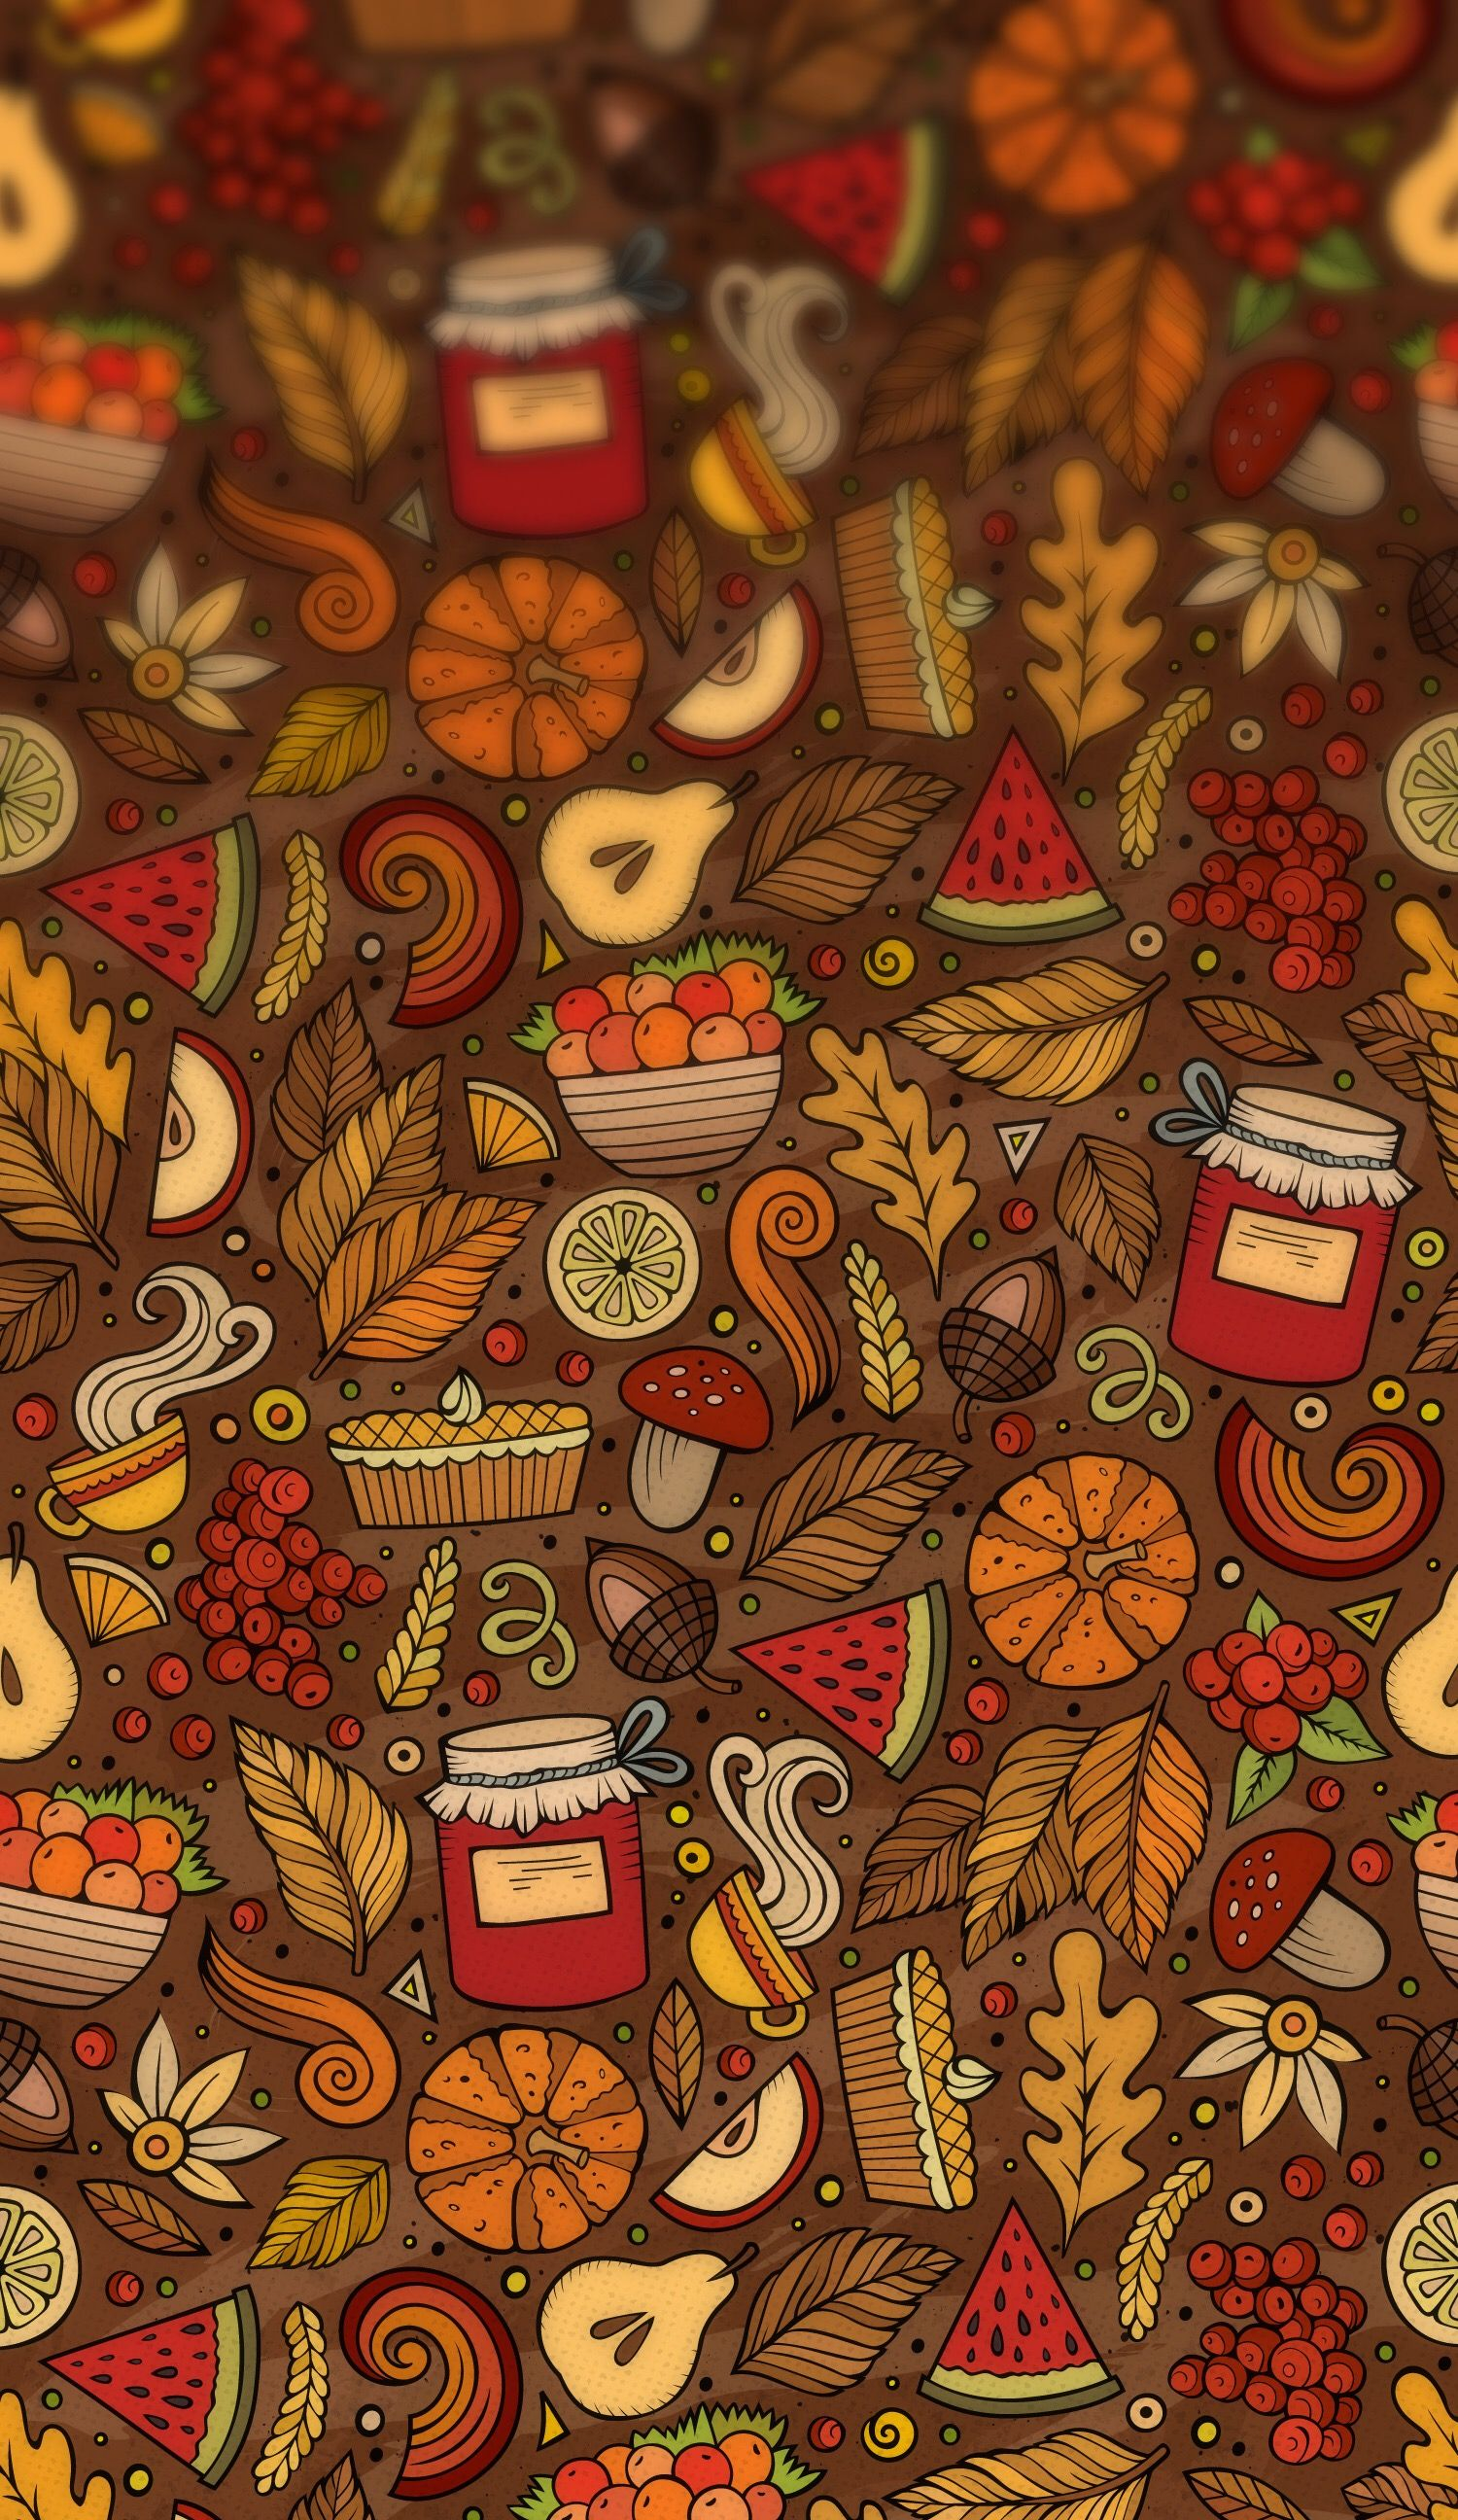 Thanksgiving Plain wallpaper iphone, Fall wallpaper